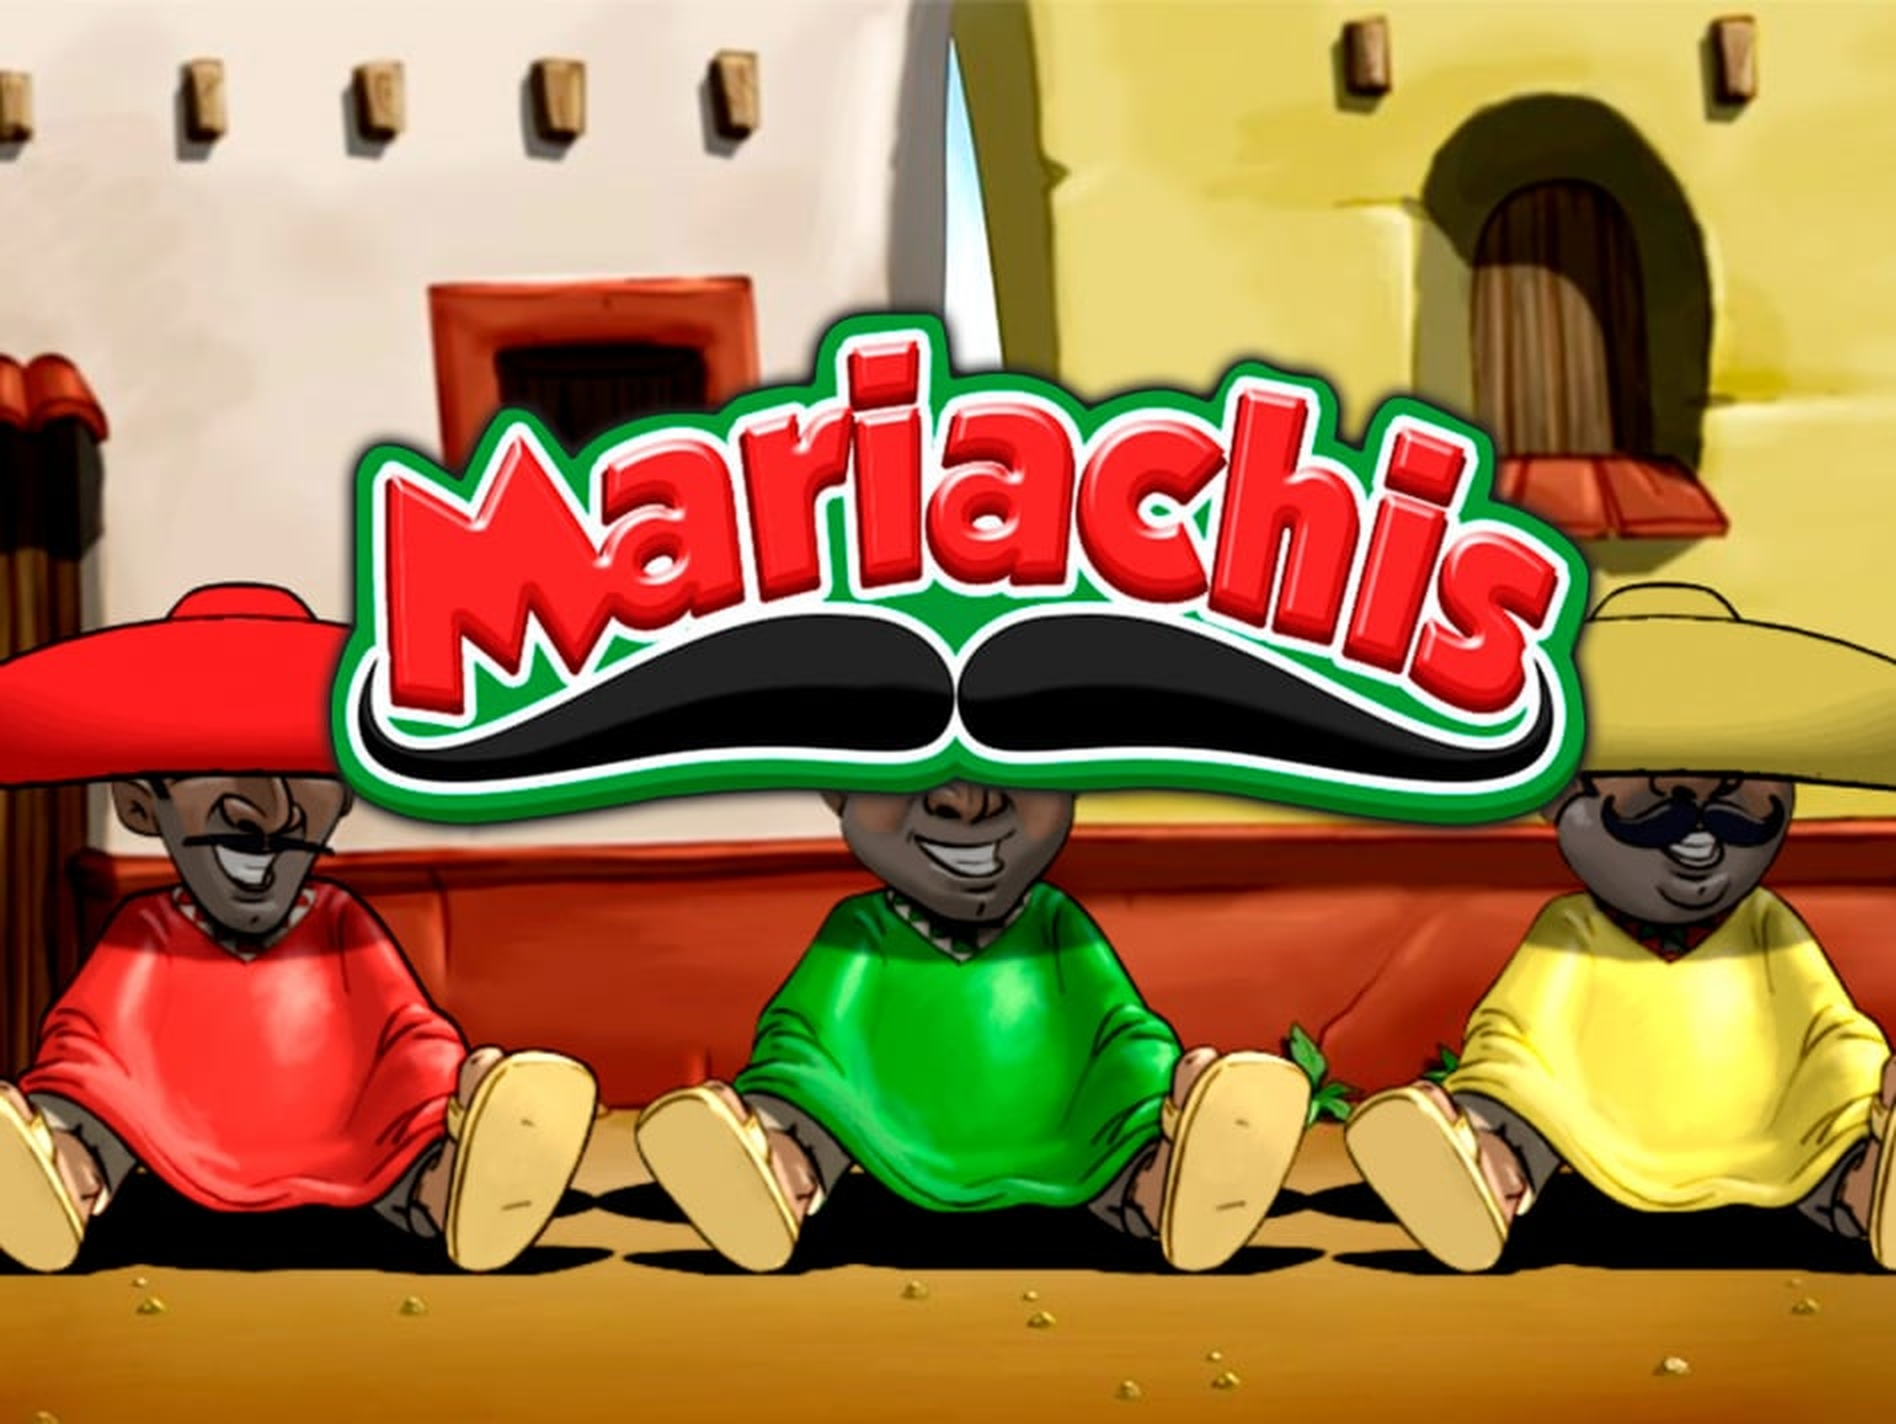 The Mariachis Bingo Online Slot Demo Game by MGA